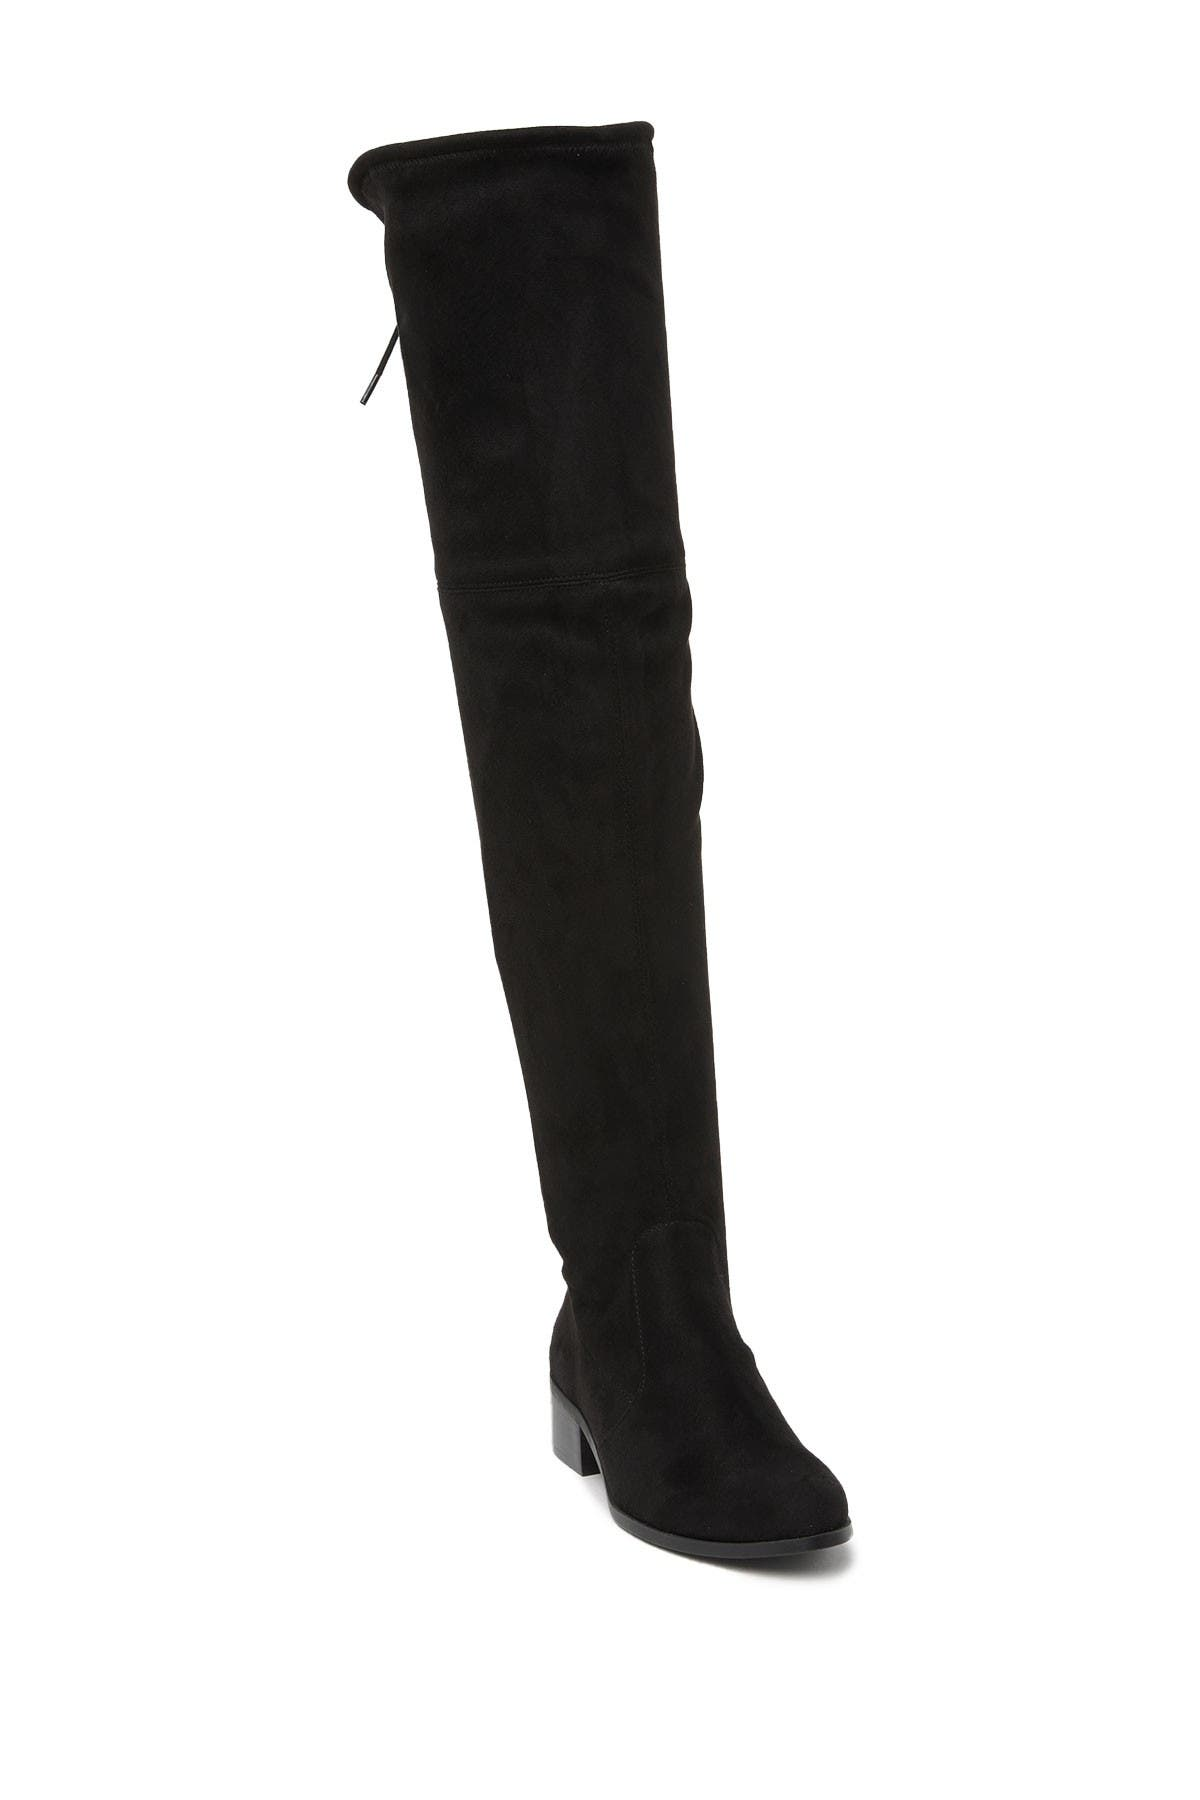 Image of Charles David Gammon Over-the-Knee Boot